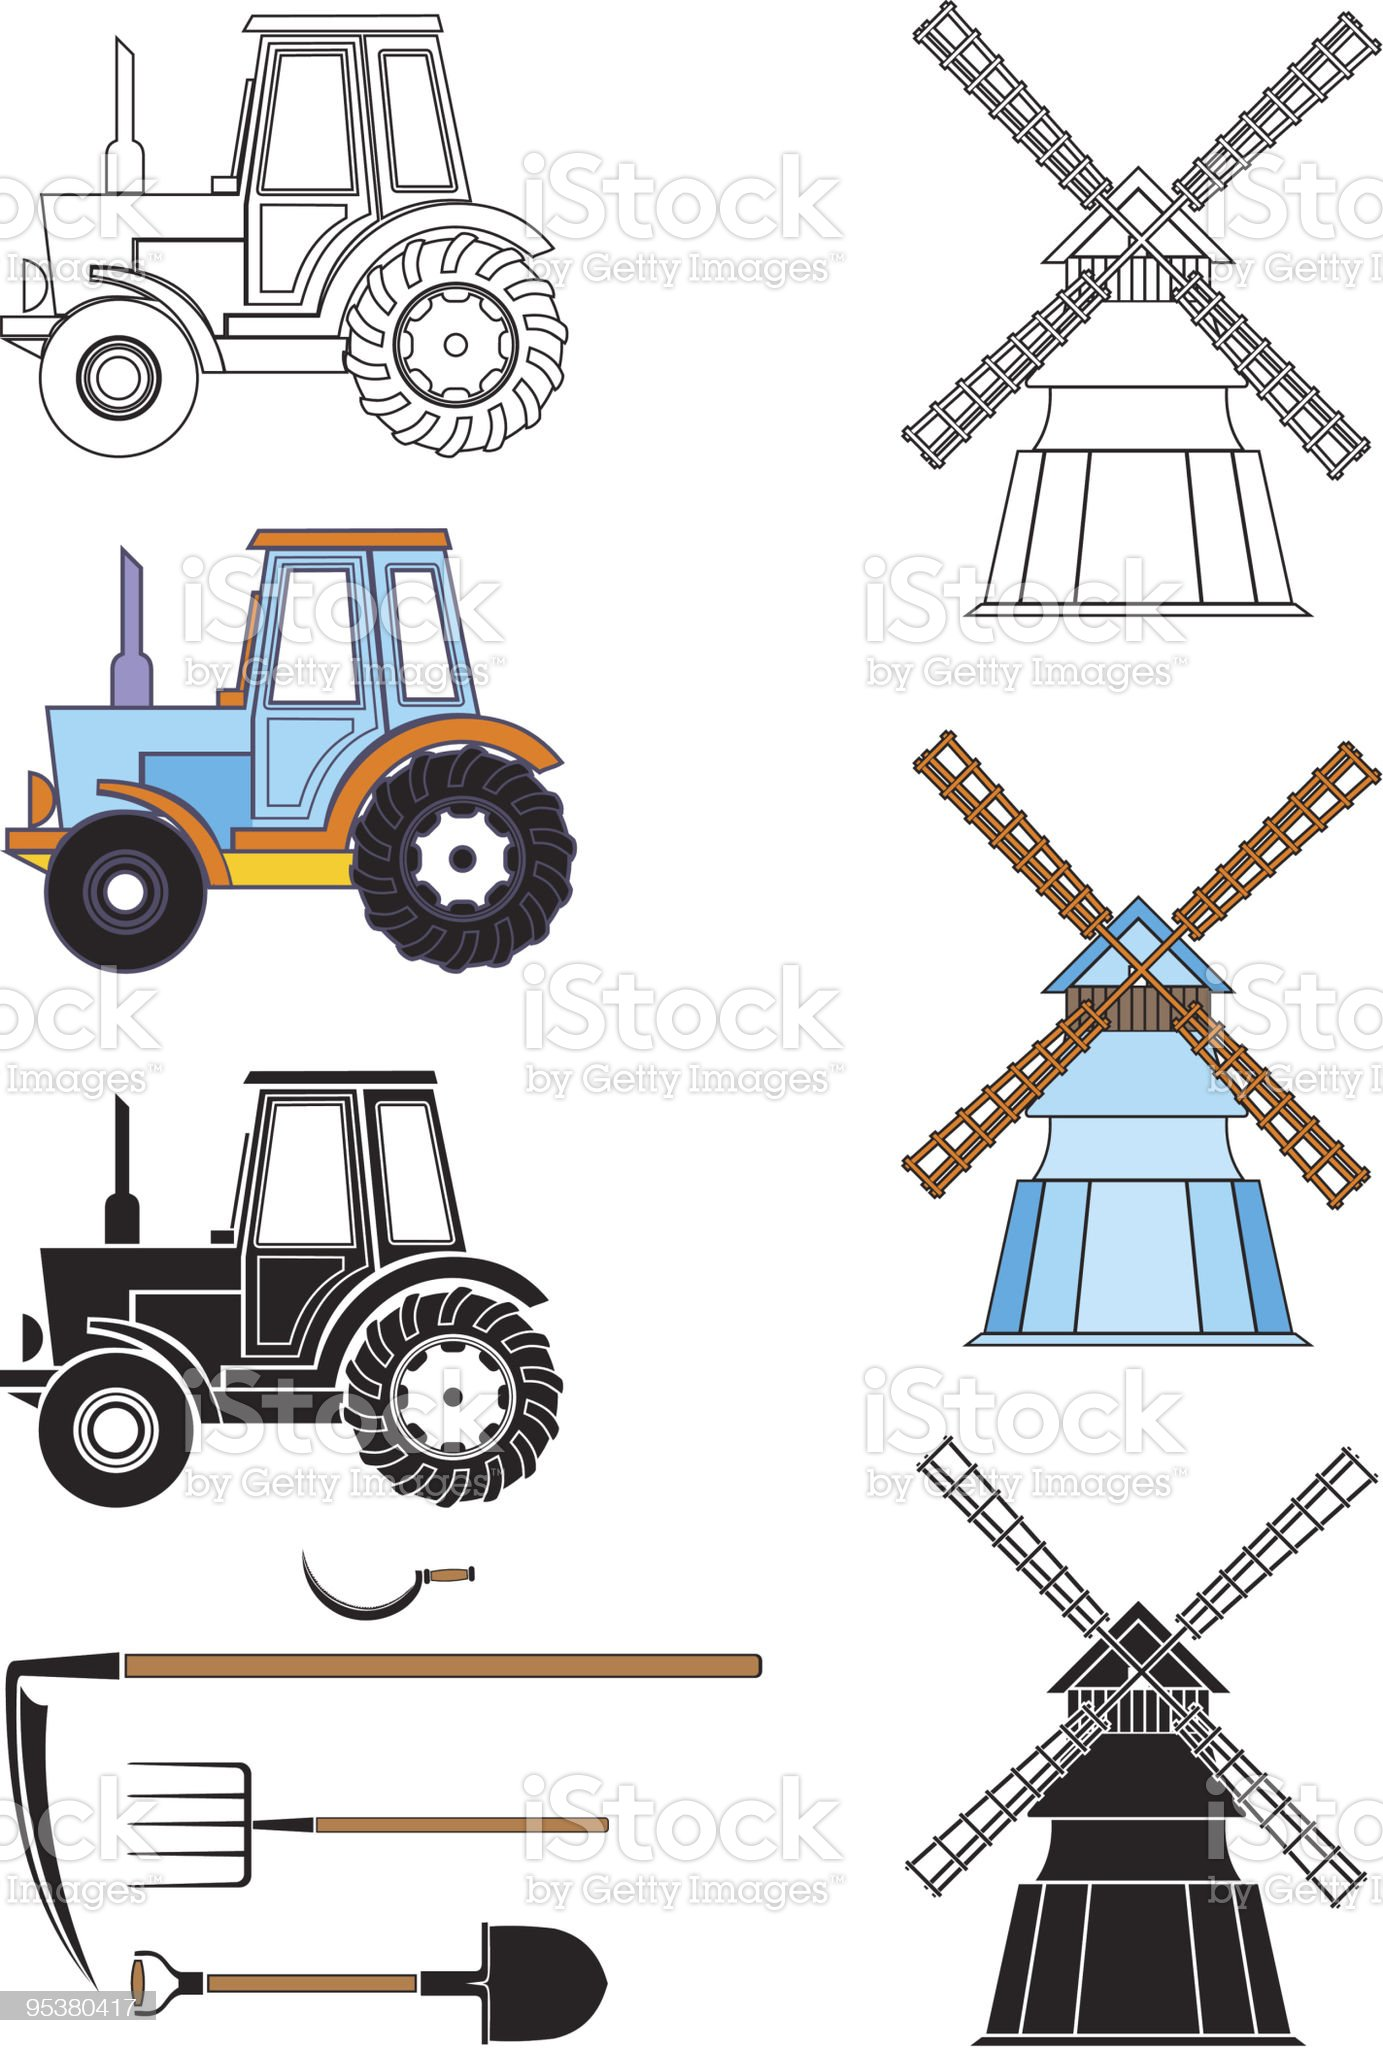 Agricultural Technology royalty-free stock vector art